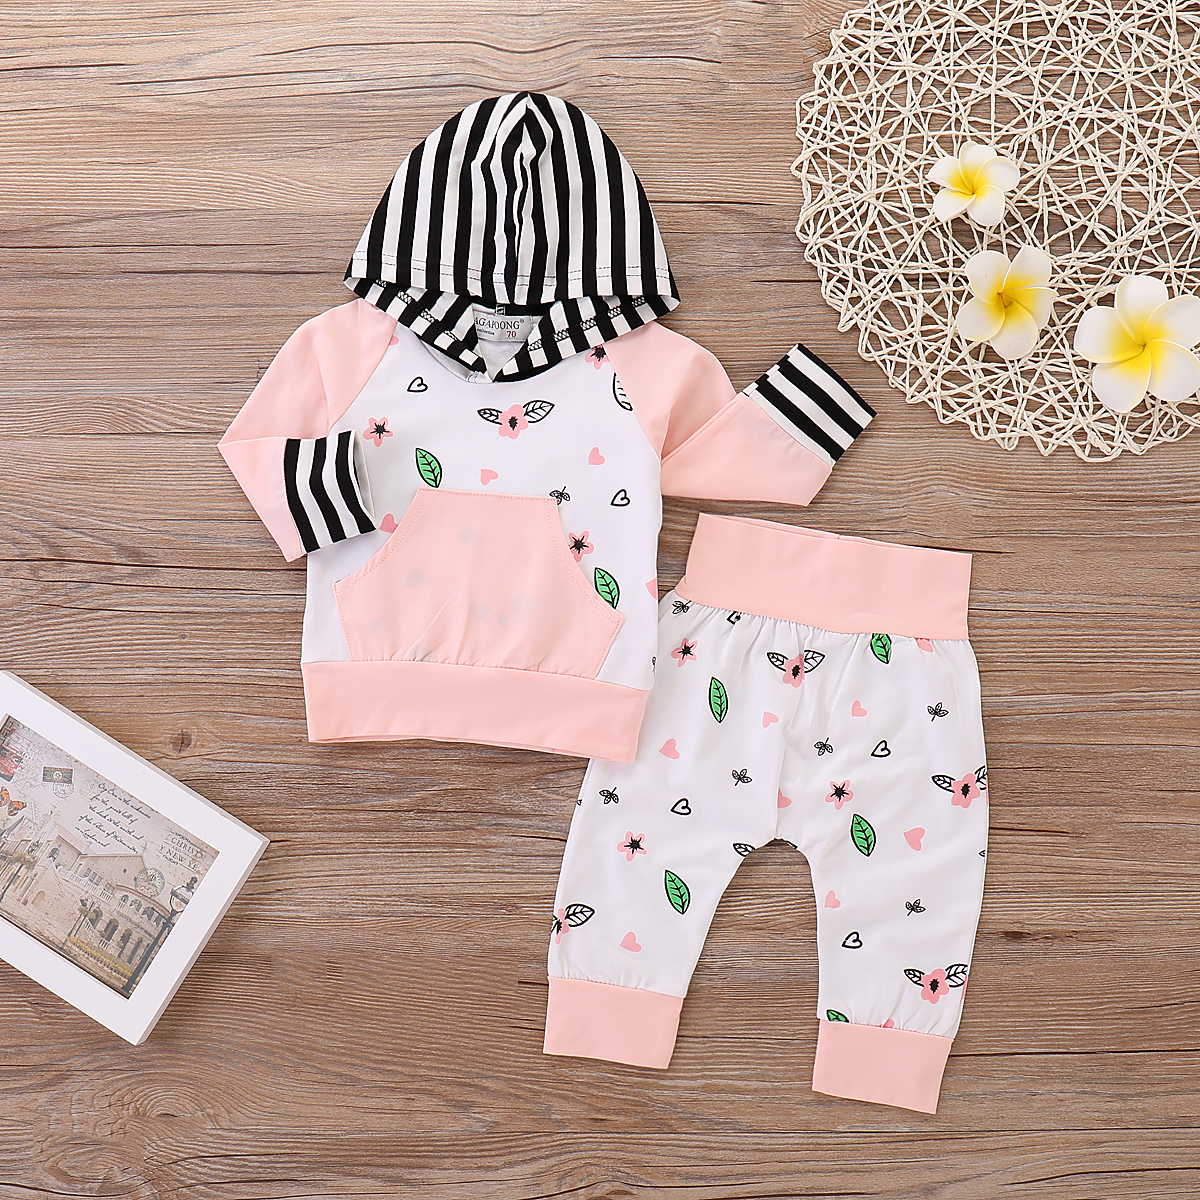 Baby & Toddler Clothing Brand New Baby Girls Size 6-9 Months Blue Flowered Bow Top & Cat Jeans Set Outfits & Sets